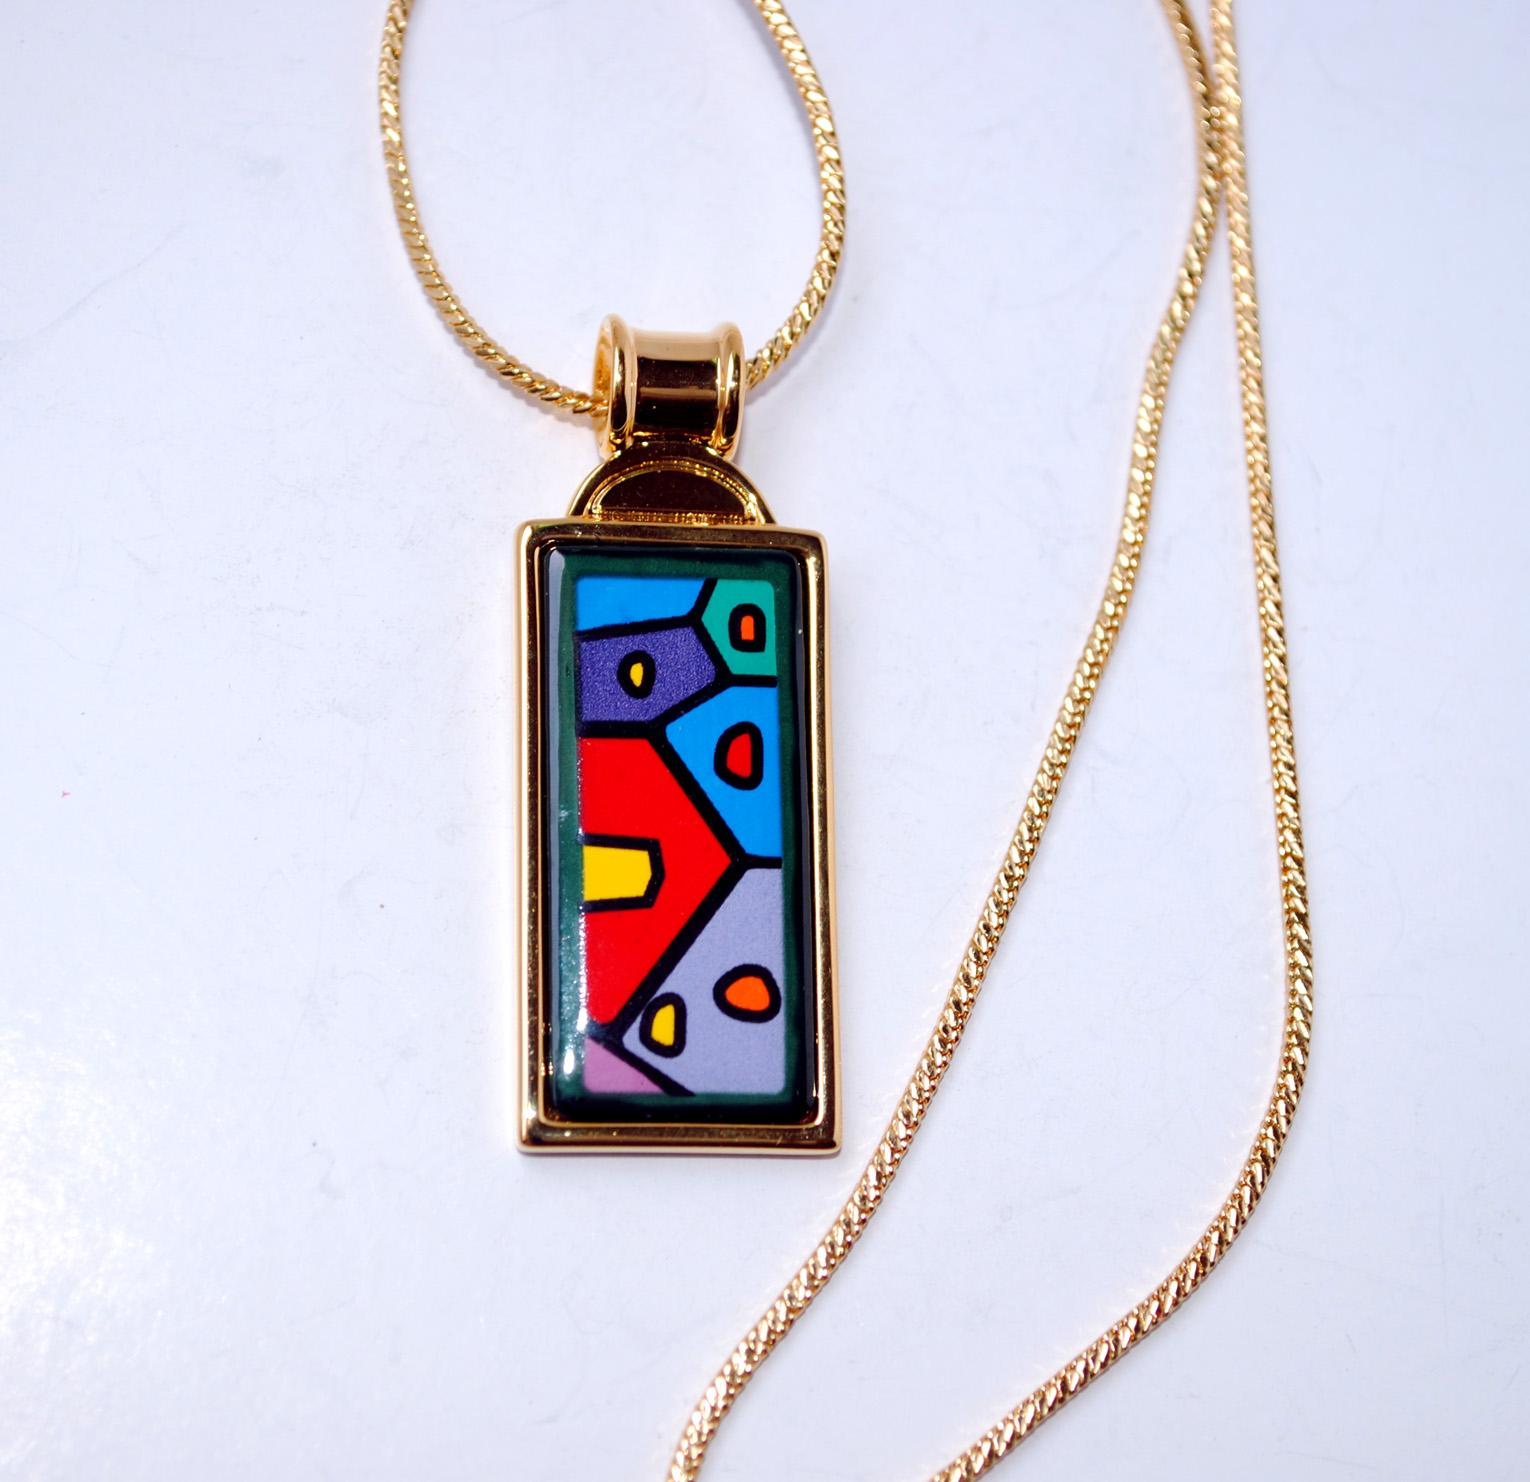 rectangle international en store online website official dmtd rectangular fashion versace rectanglemedusapendantnecklace necklaces gold accessories for necklace men chains jewelry medusa pendant